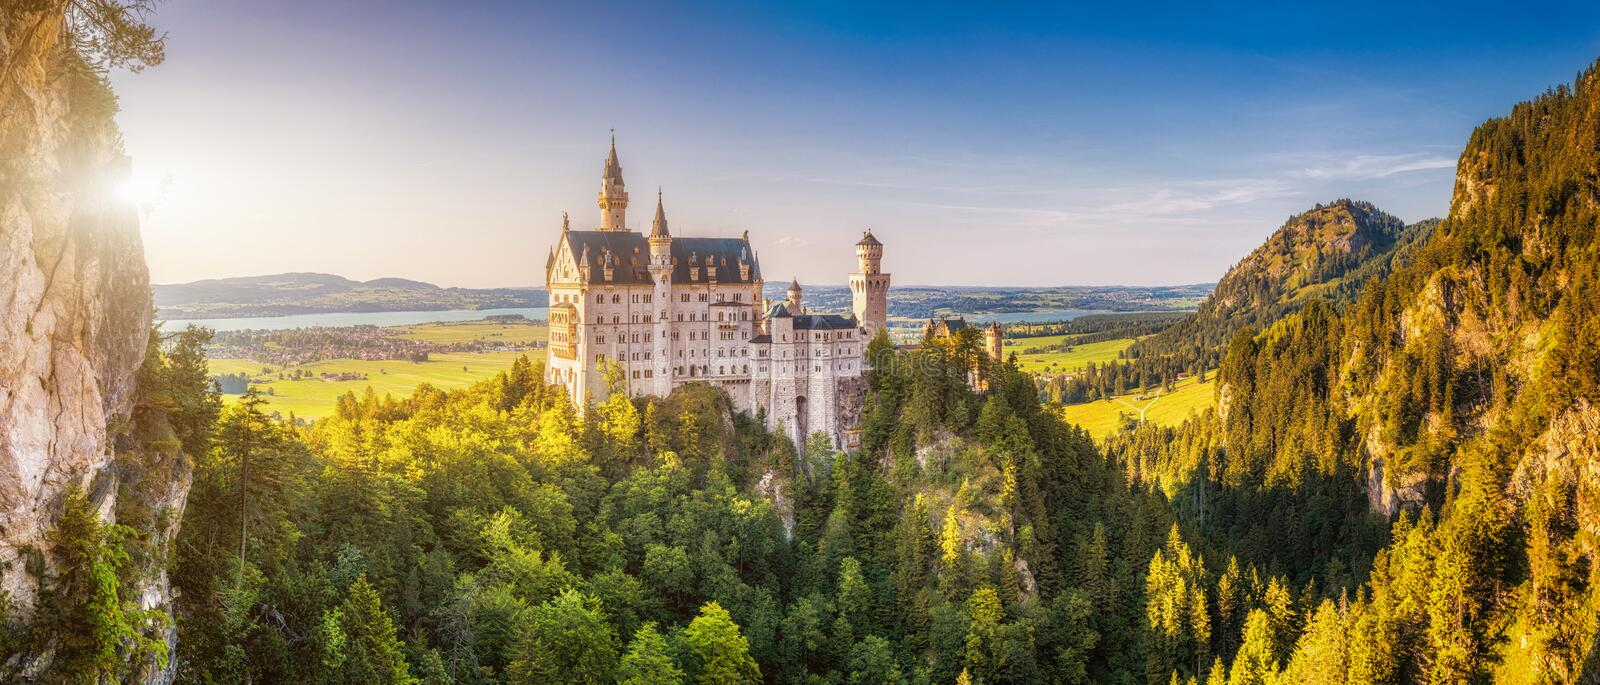 World-famous Neuschwanstein Castle in beautiful evening light, Fussen, Germany. Beautiful view of world-famous Neuschwanstein Castle, the 19th century Romanesque stock photography